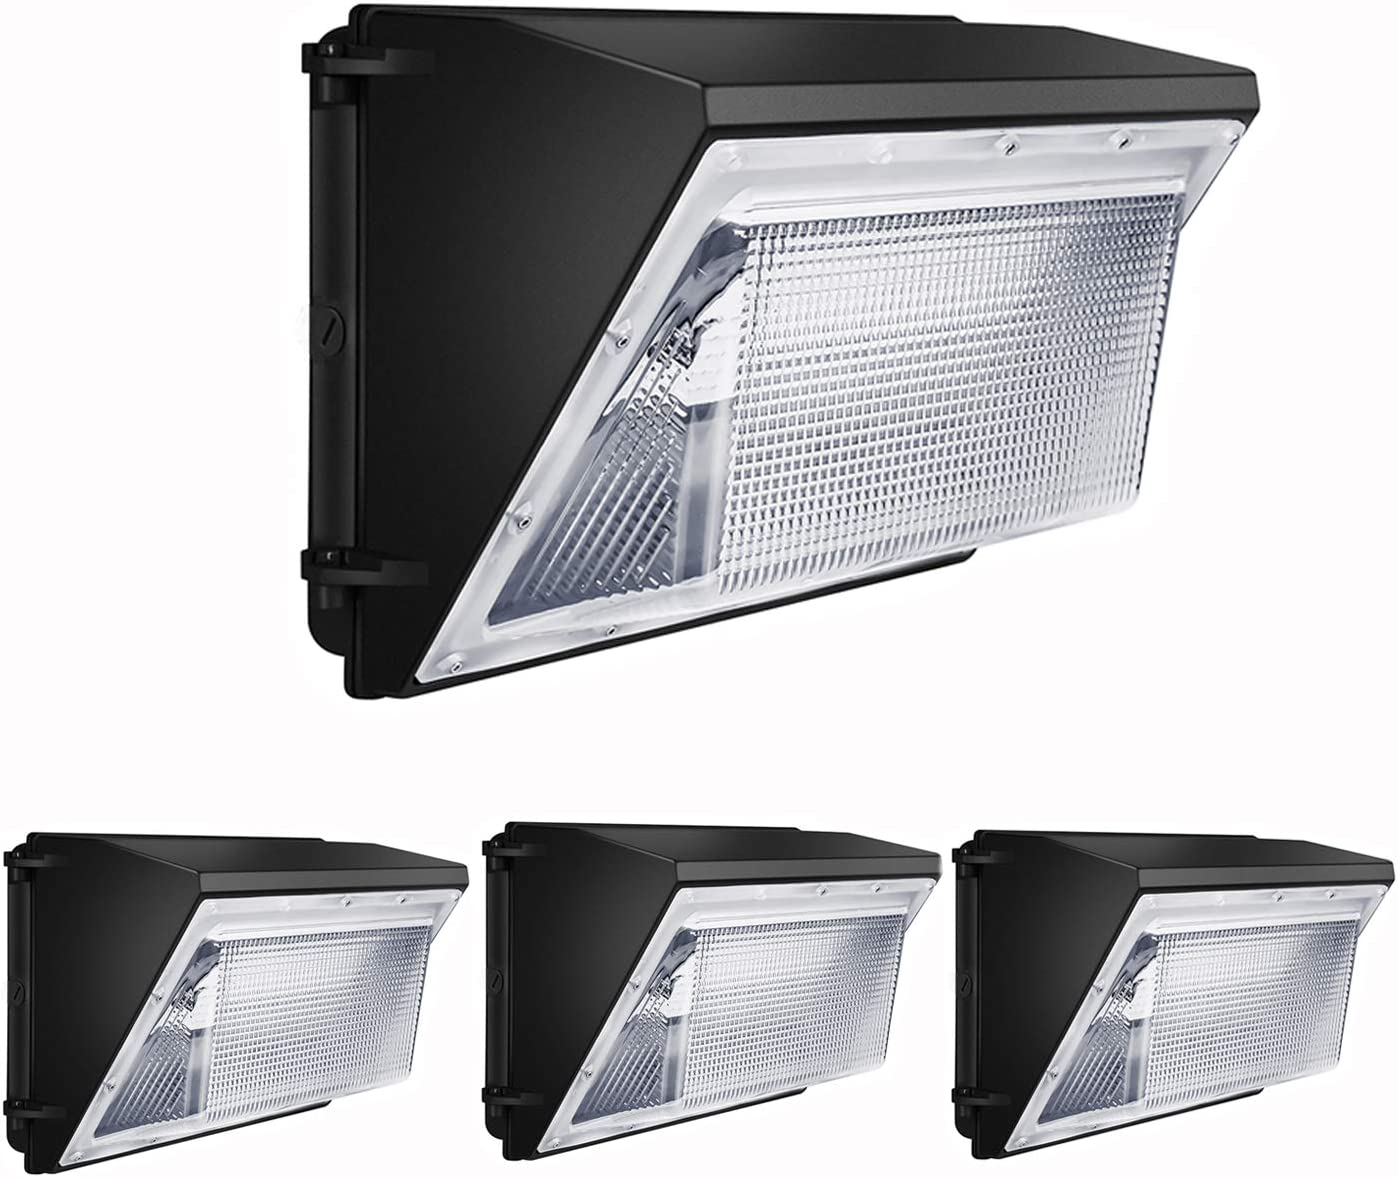 Led Wall Pack Light 120W 4 Pack 16200lm Wall Pack led 5000K Commercial led Wall Pack Outdoor 840W HPS HID Equivalent